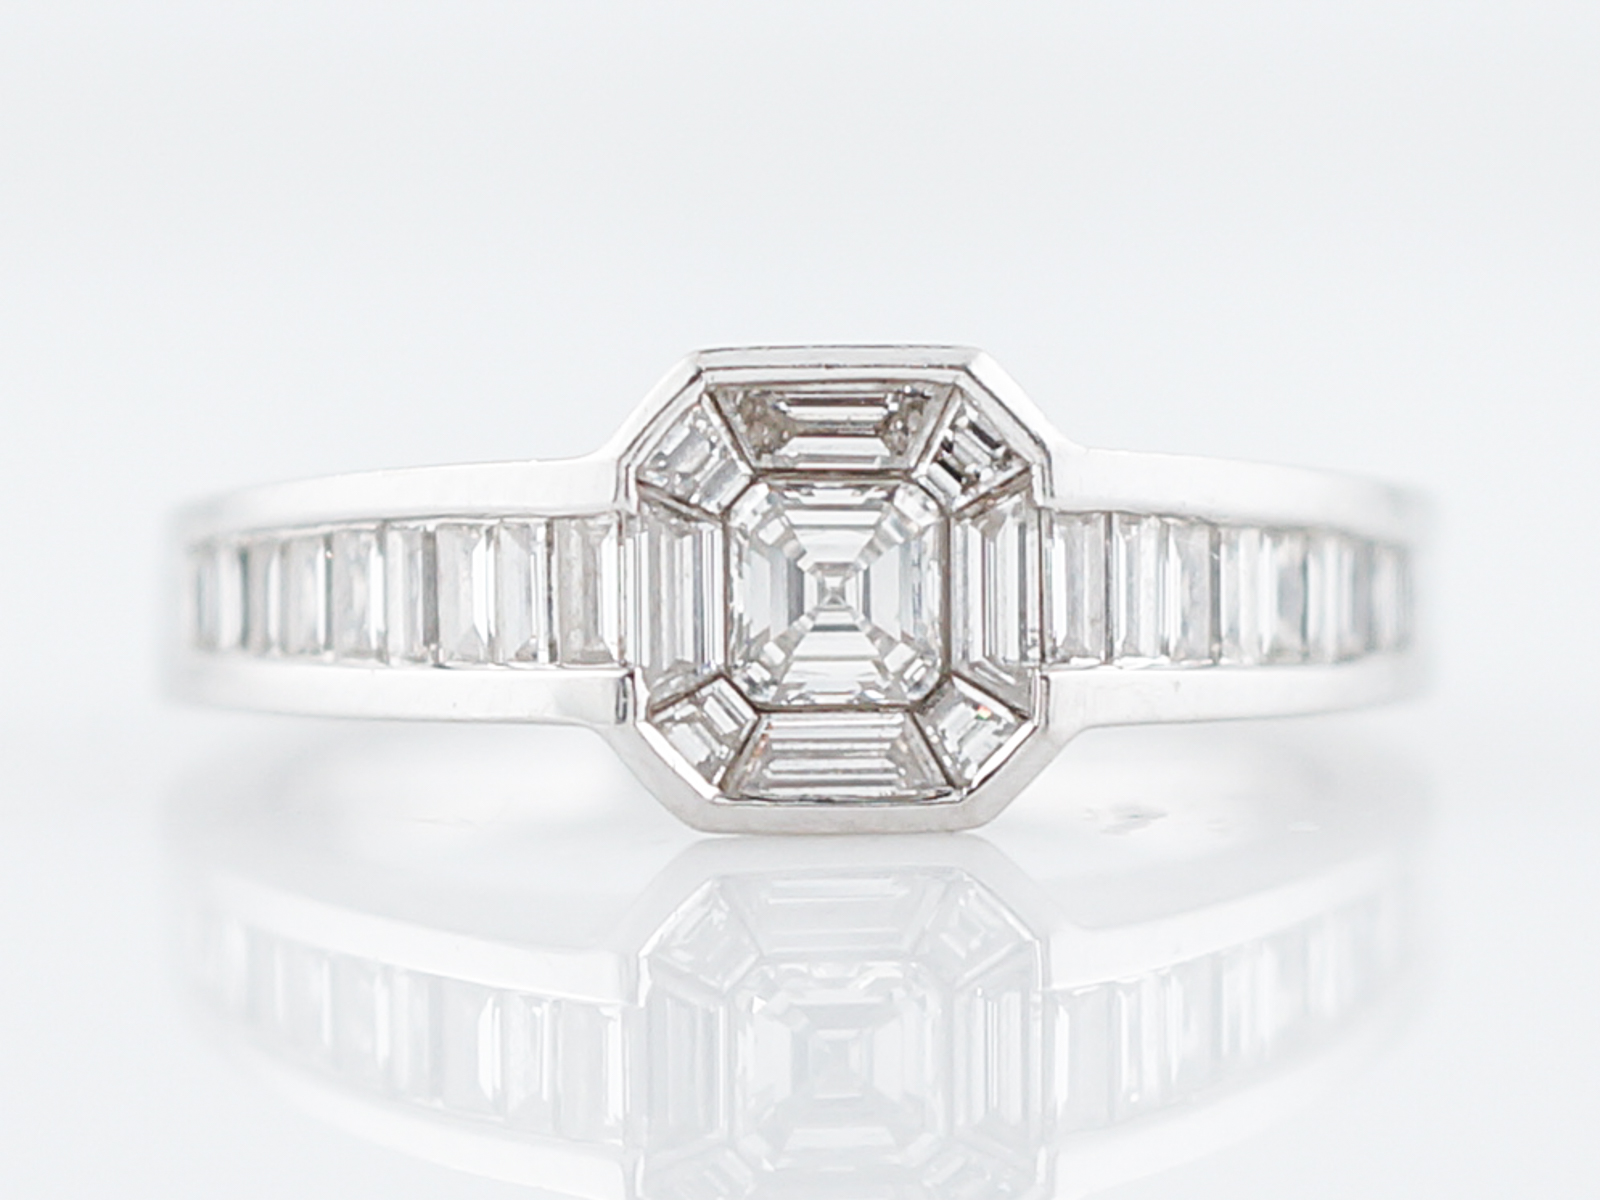 white gold ring ct on rings anye asscher diamond rush engagement inspired vintage cut